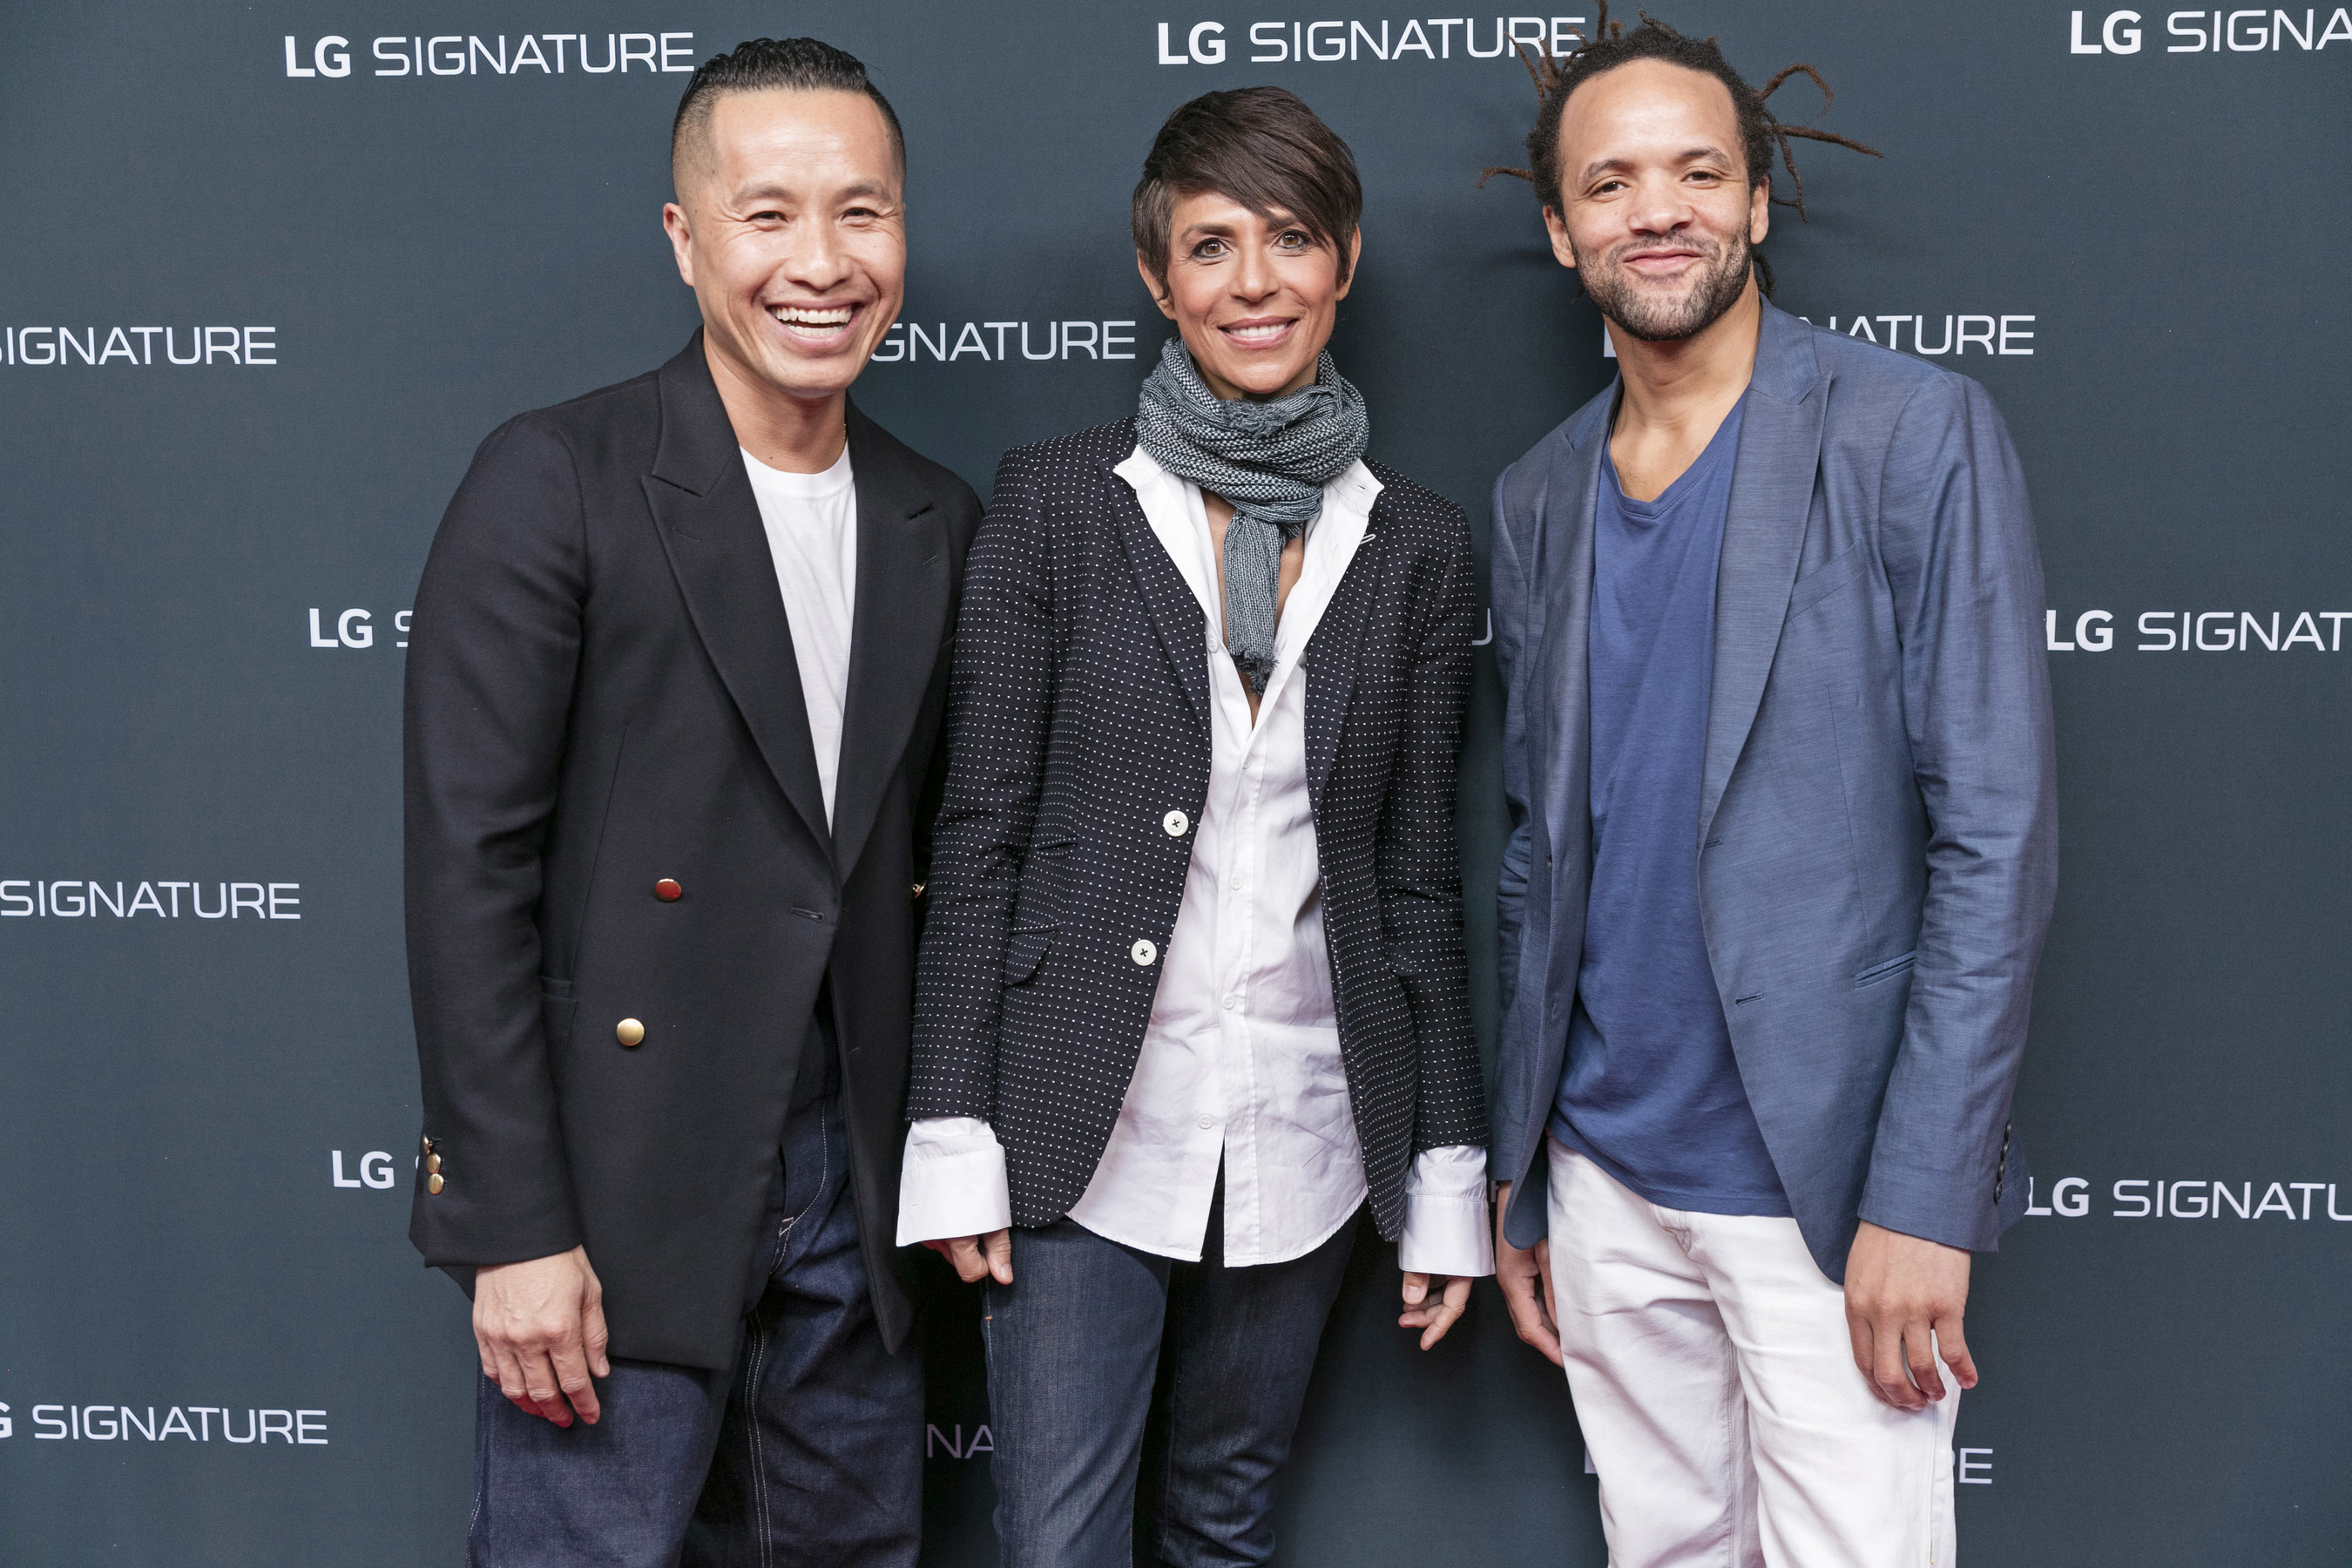 Phillip Lim, Dominique Crenn and Savion Glover attend the launch of LG SIGNATURE at the LG SIGNATURE Gallery unveiling